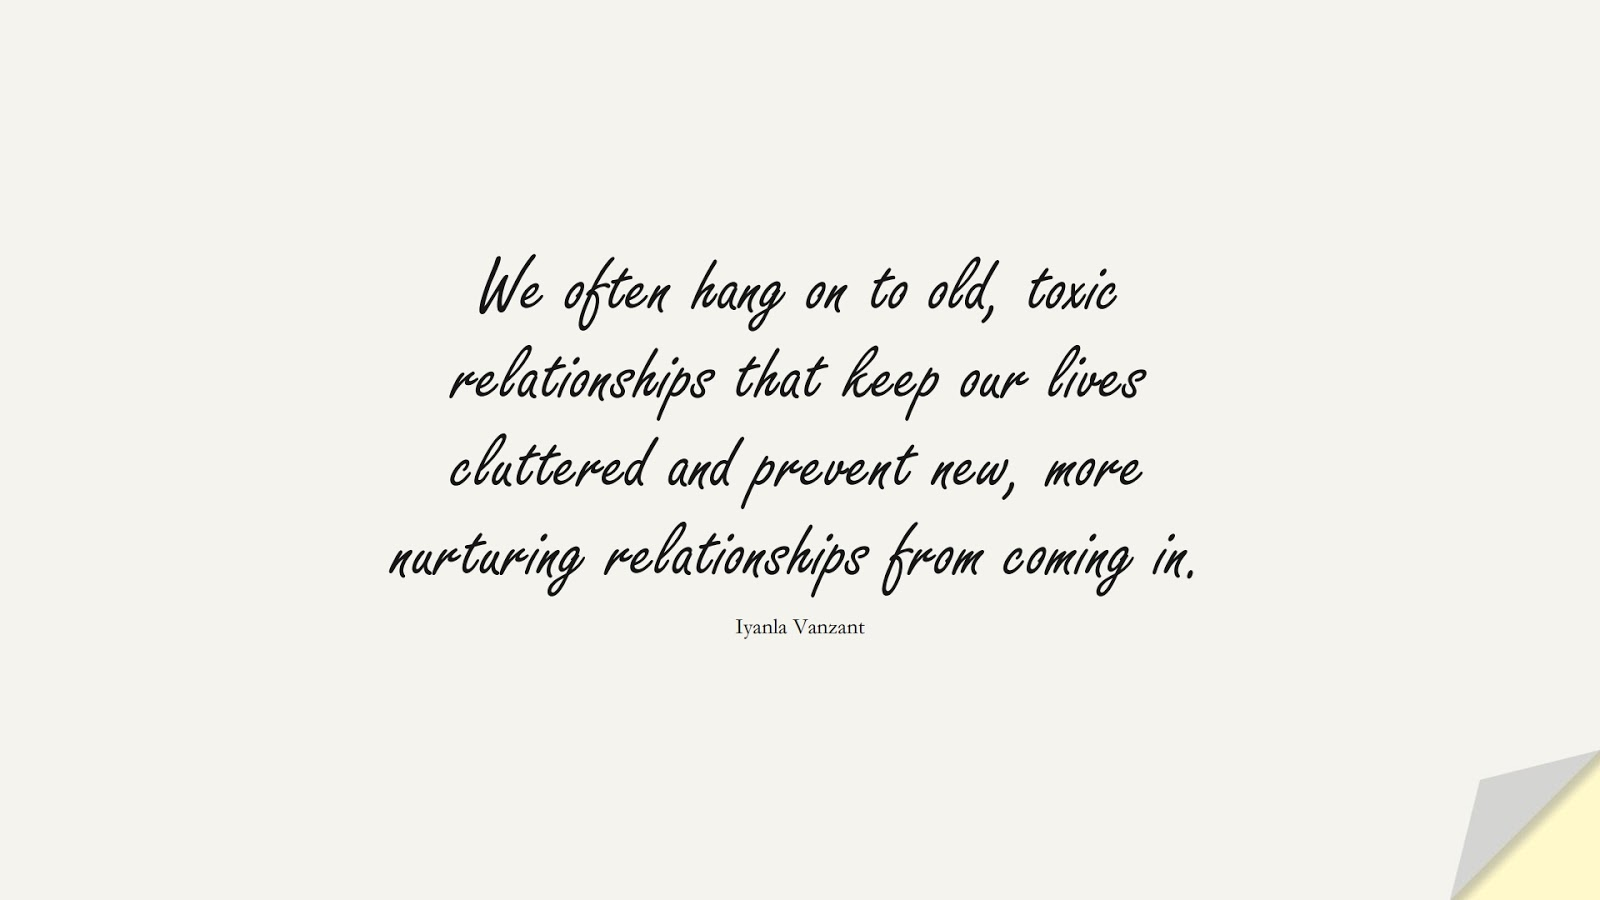 We often hang on to old, toxic relationships that keep our lives cluttered and prevent new, more nurturing relationships from coming in. (Iyanla Vanzant);  #RelationshipQuotes